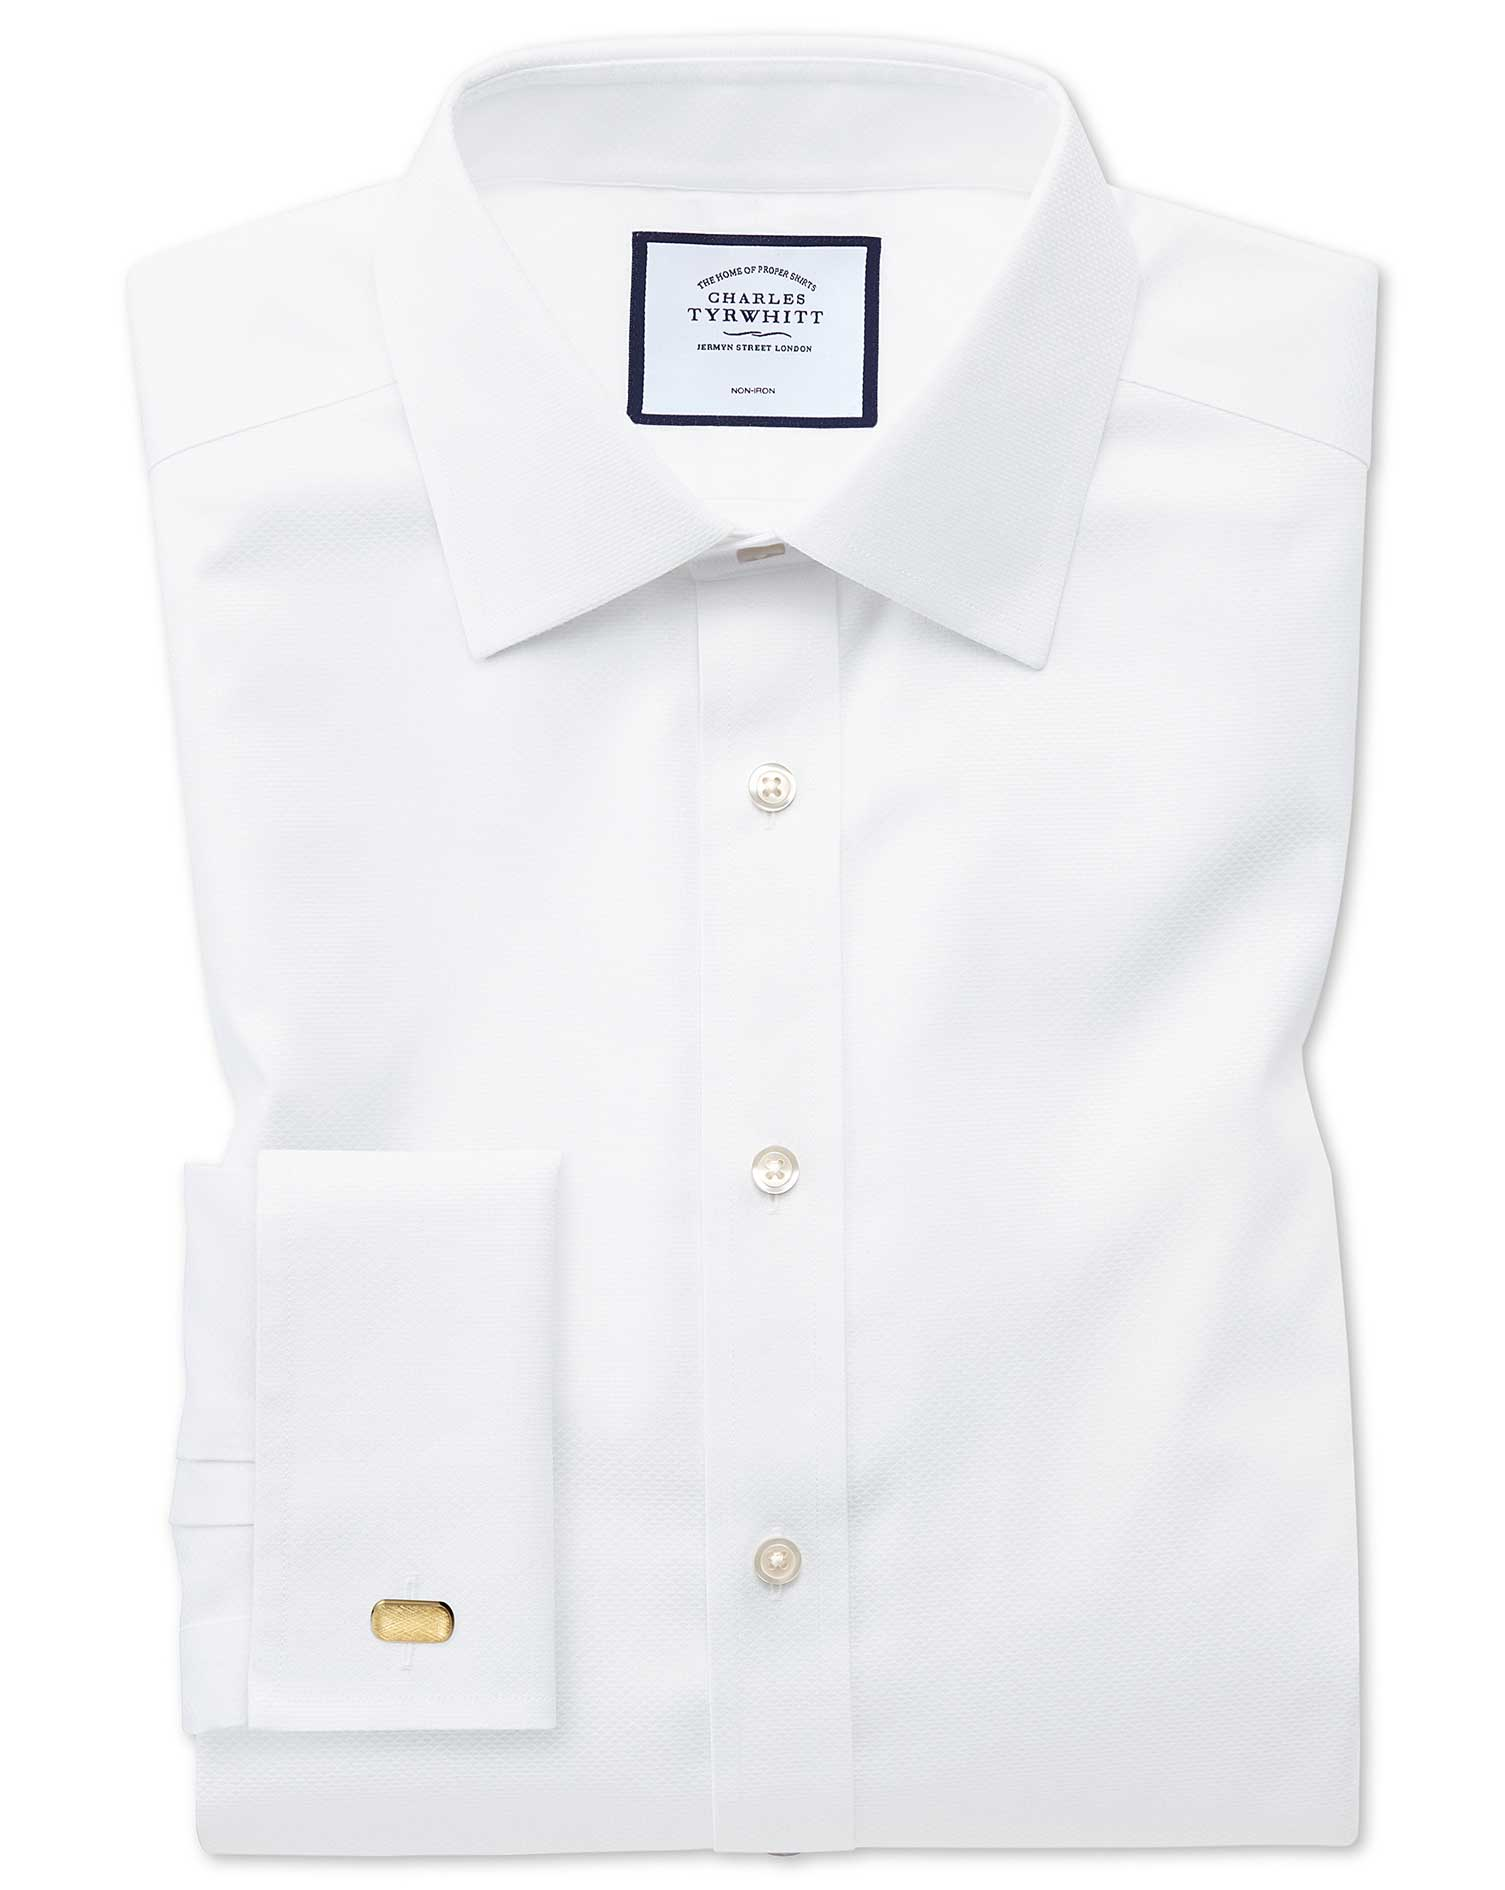 Extra Slim Fit Non-Iron White Triangle Weave Cotton Formal Shirt Double Cuff Size 16/34 by Charles T